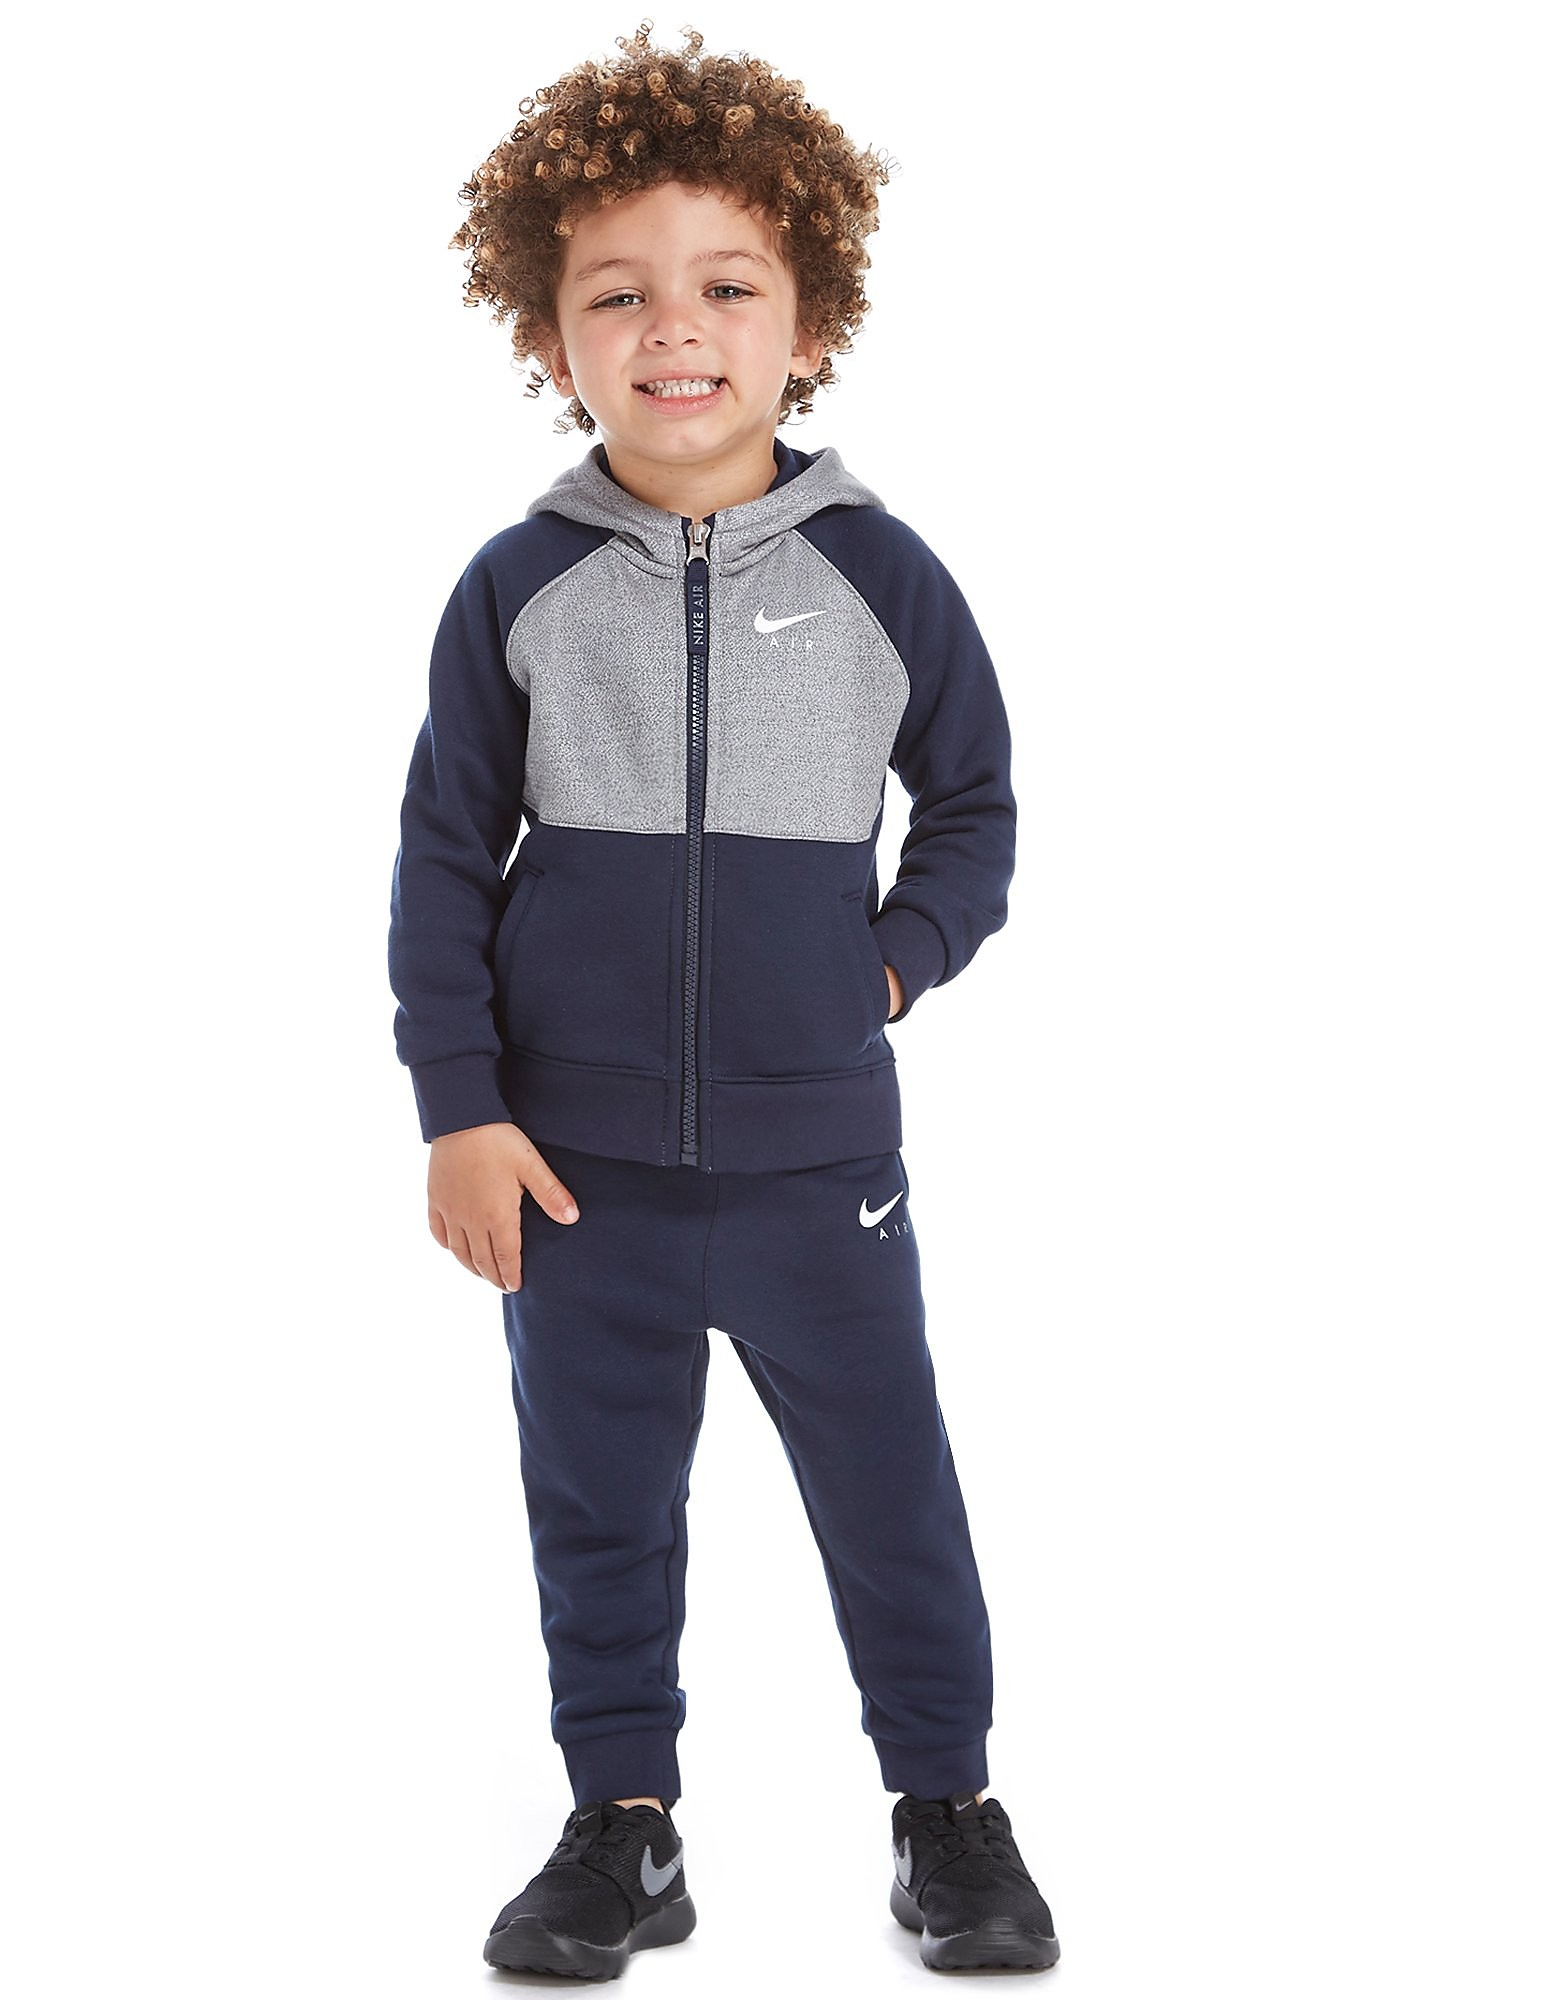 Nike Air Full Zip Suit Infant